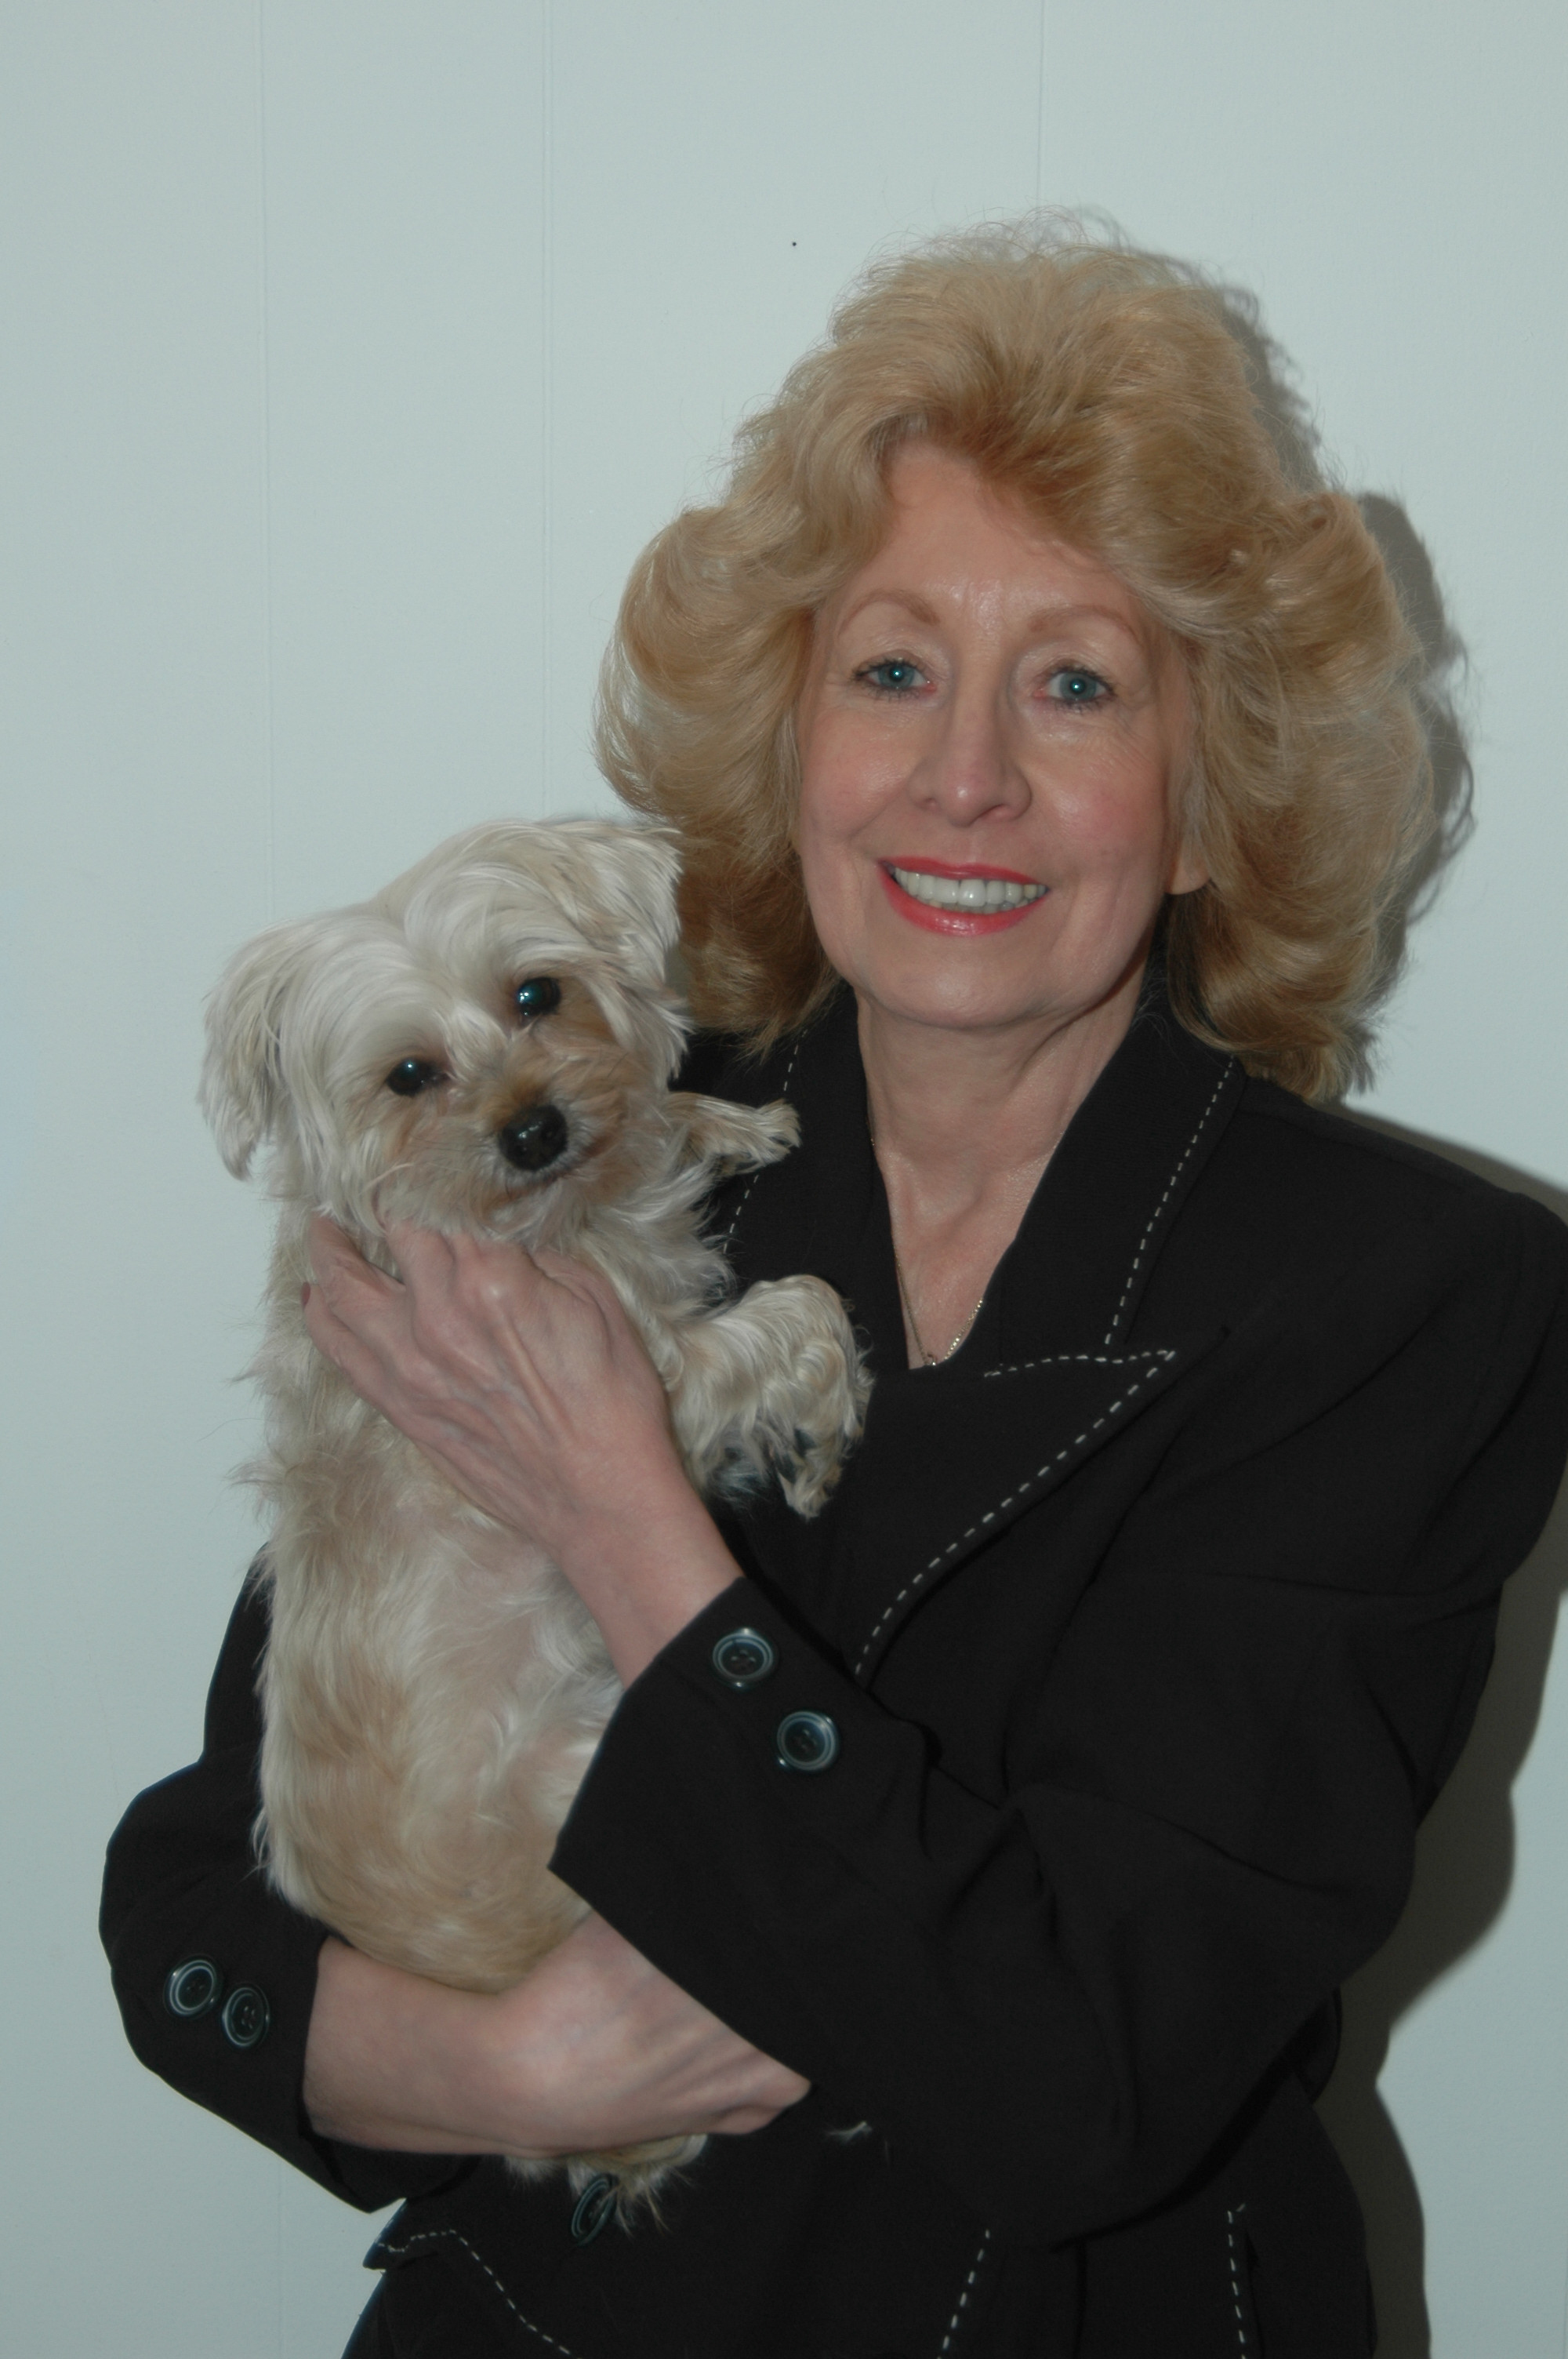 Maryann Chernovsky, President, Little Shelter and 911 Dog with Broken Legs